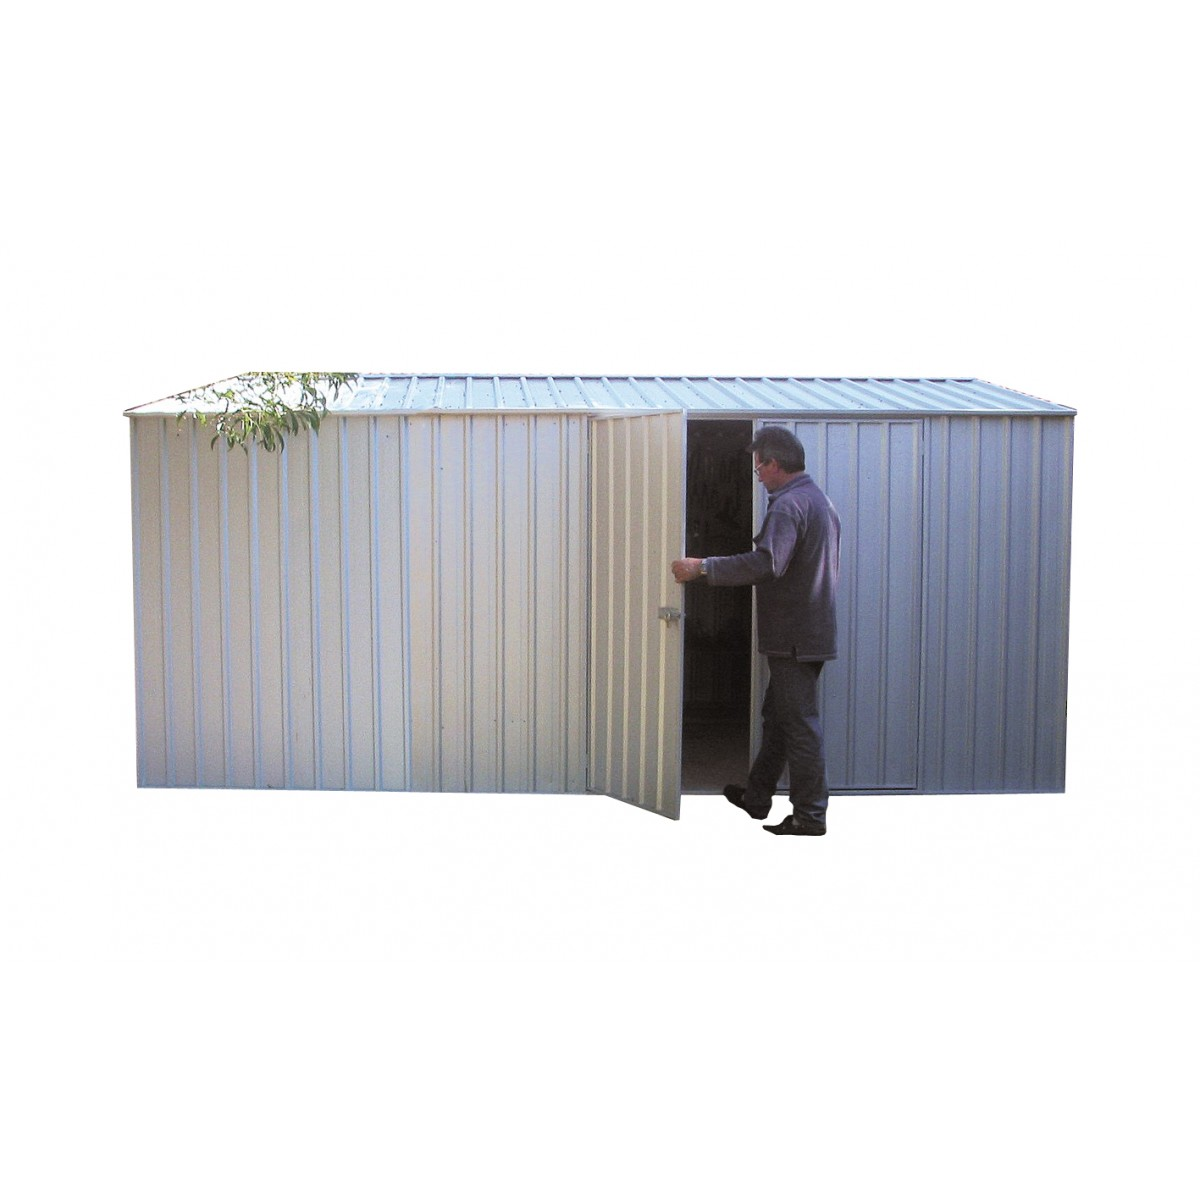 Absco workshop garden shed x 3md x for Garden shed 4 x 2